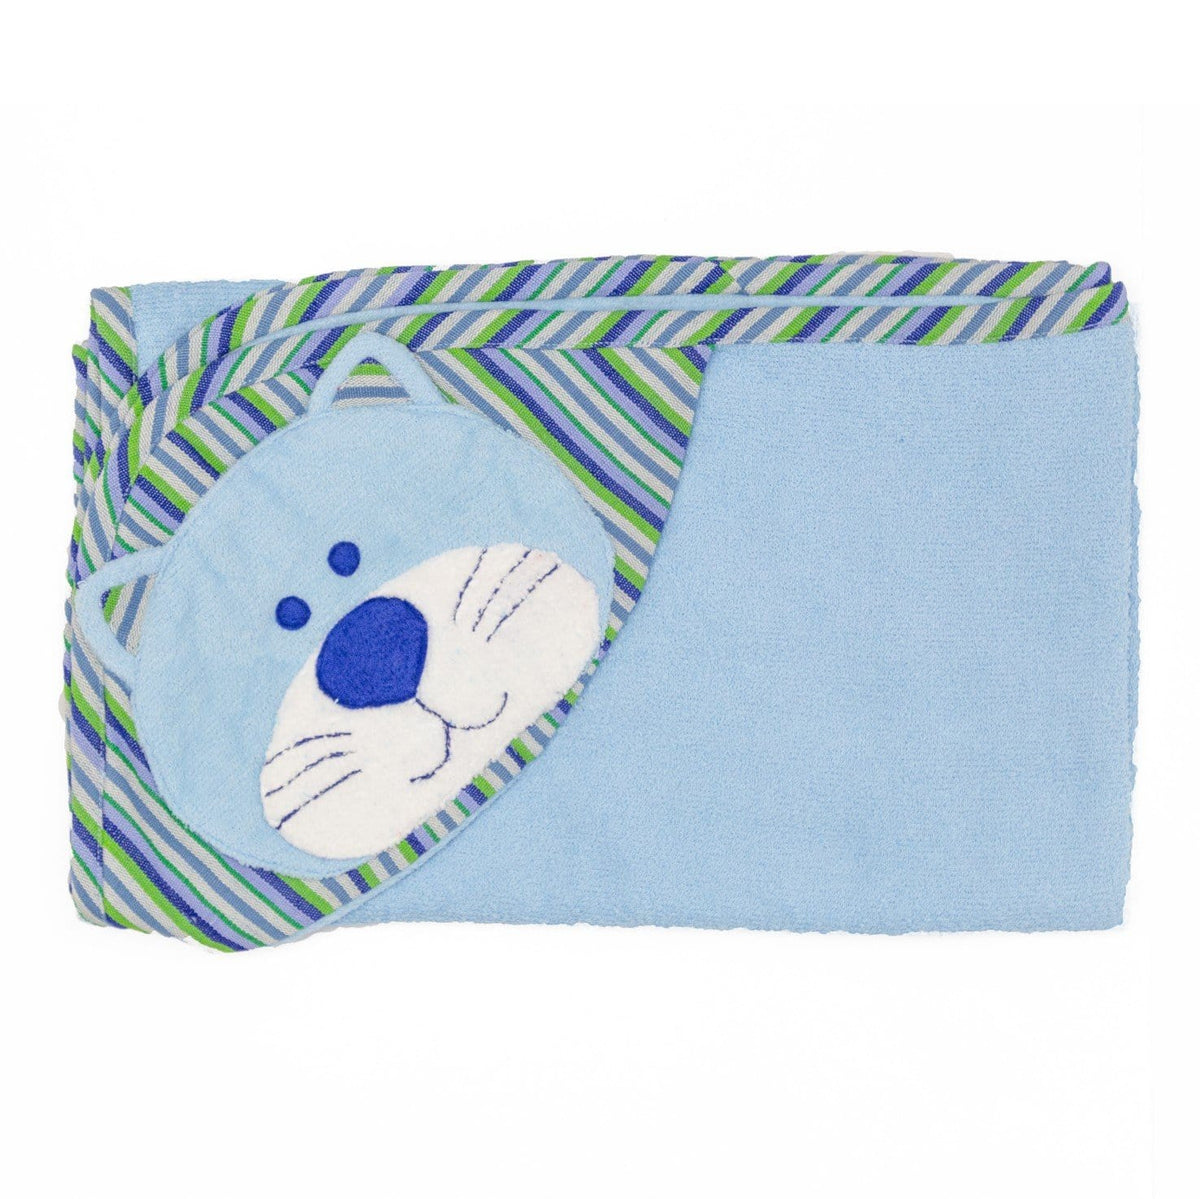 Cat Hooded Towel - Blue ?id=14022275301429